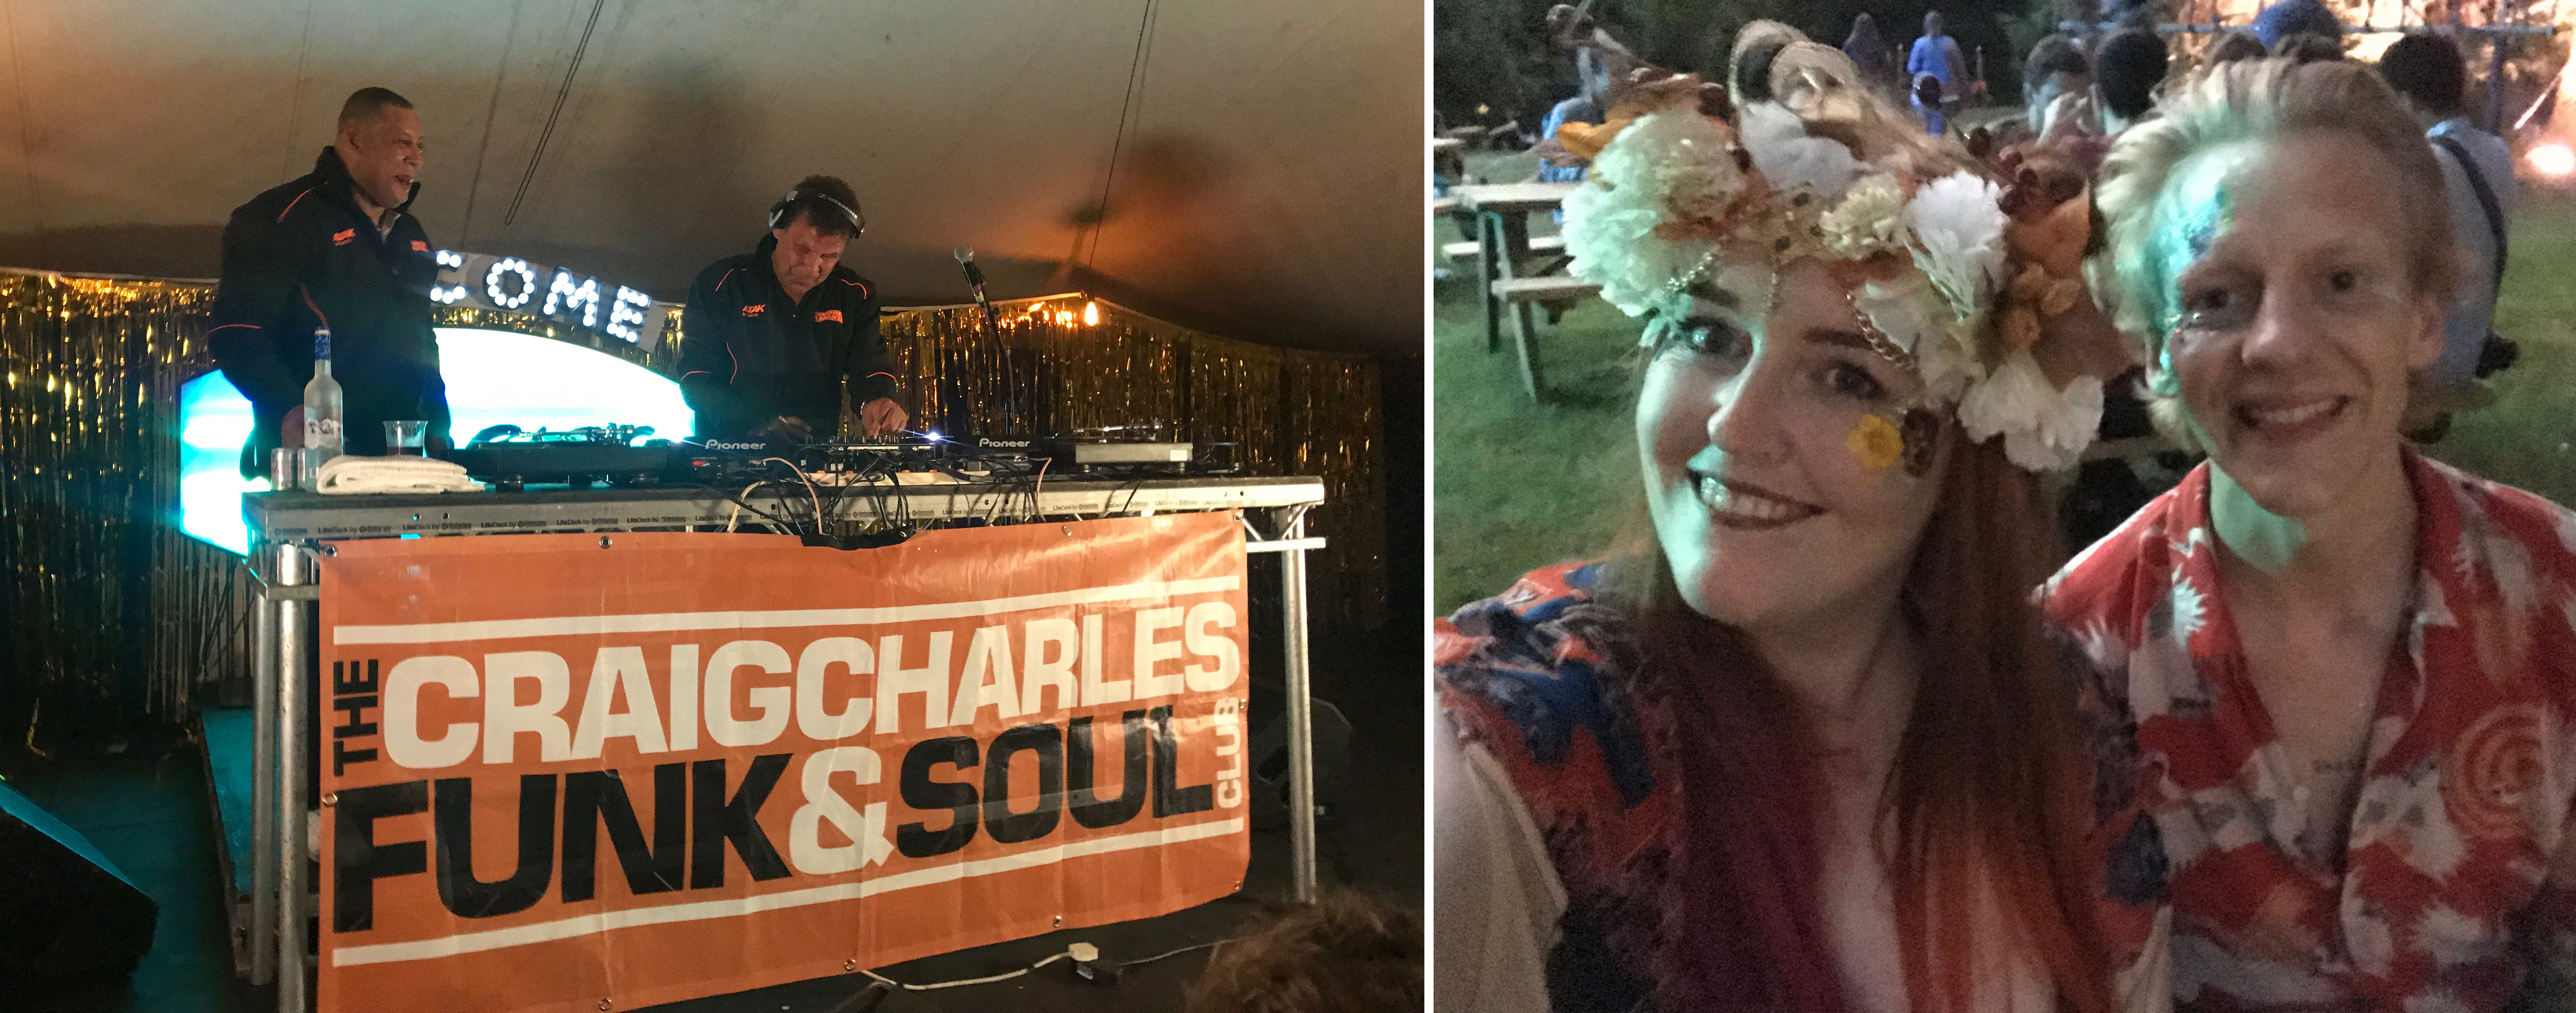 Craig Charles funk and soul show on stage and thom and I sat outside